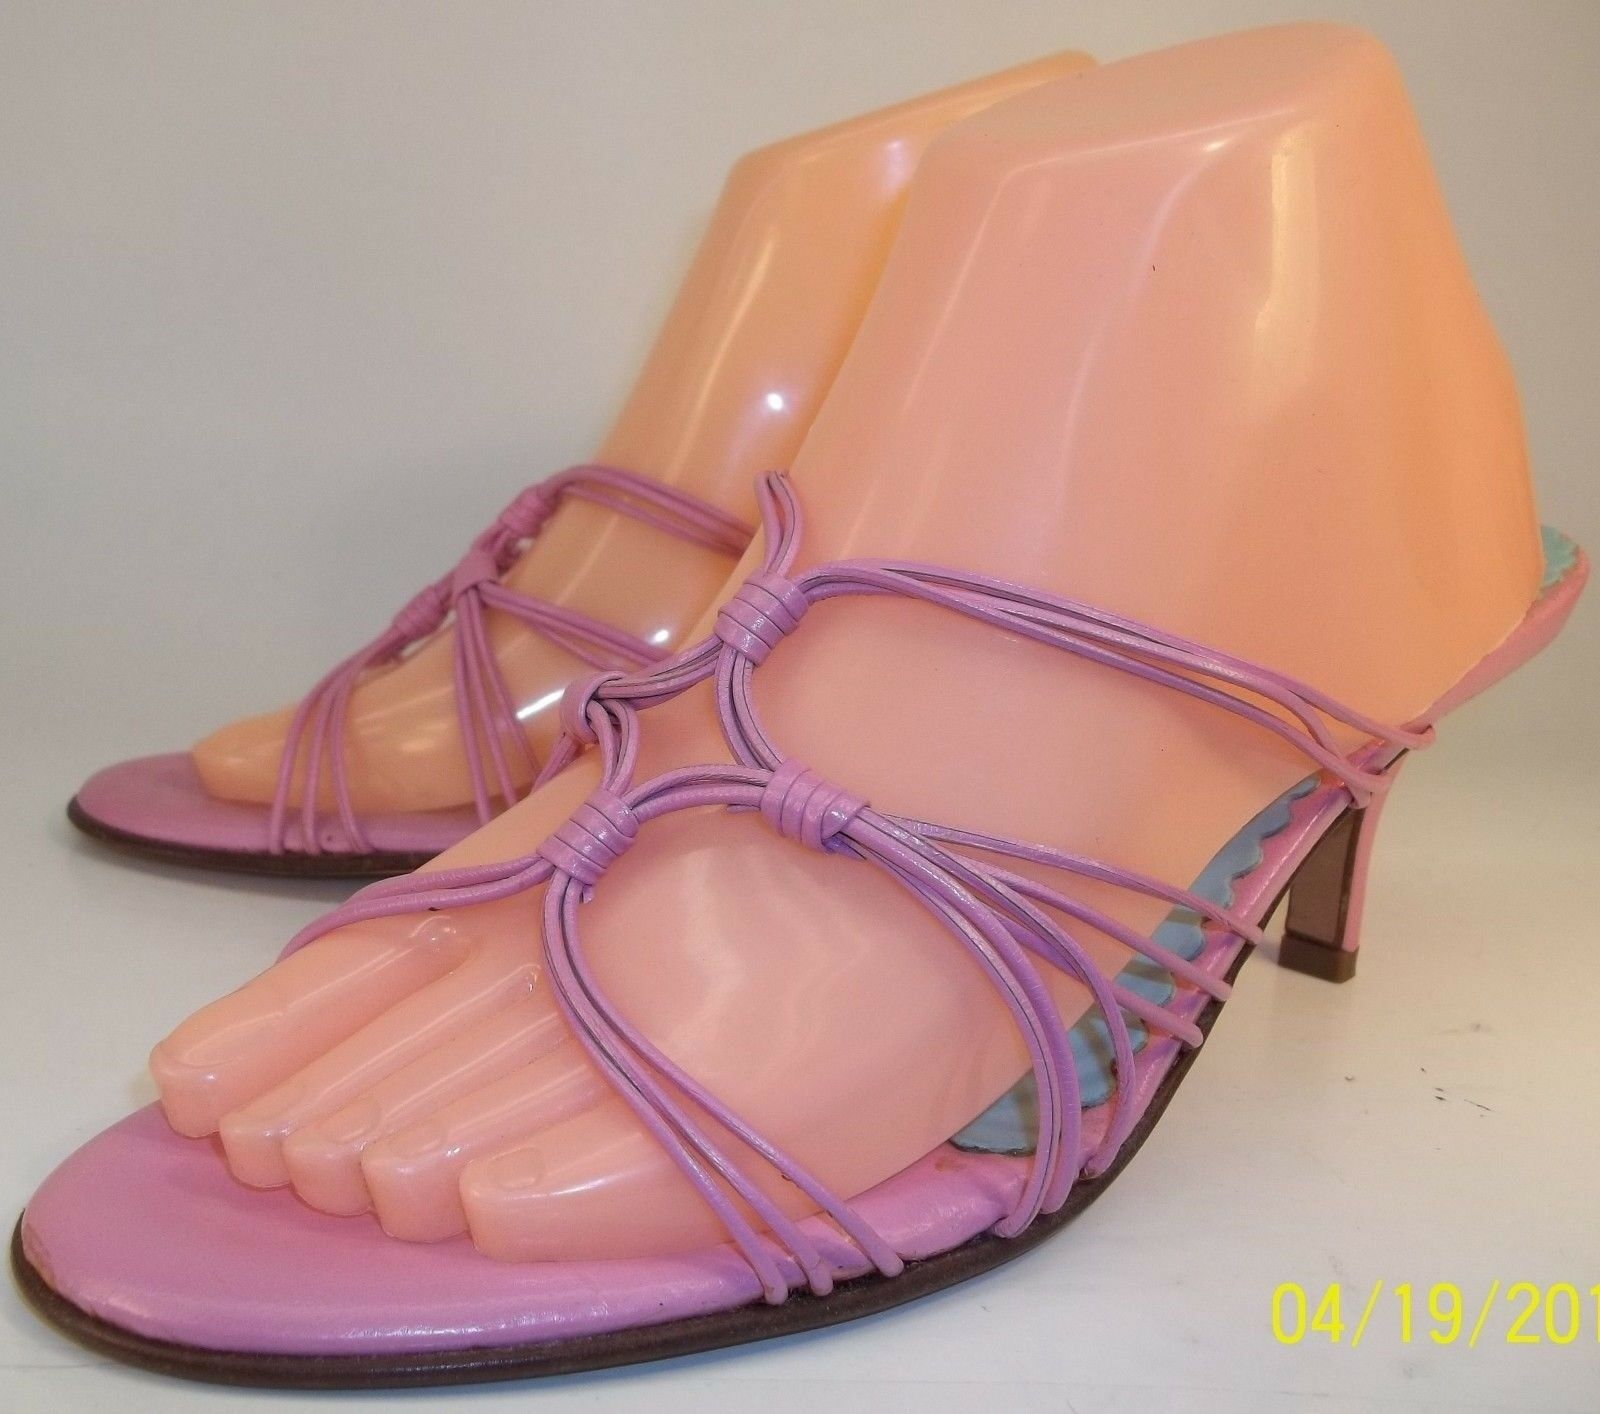 Lilly Pulitzer Womens US10M Pink Strappy Leather Slip-On Heels Shoes Sandals NEW